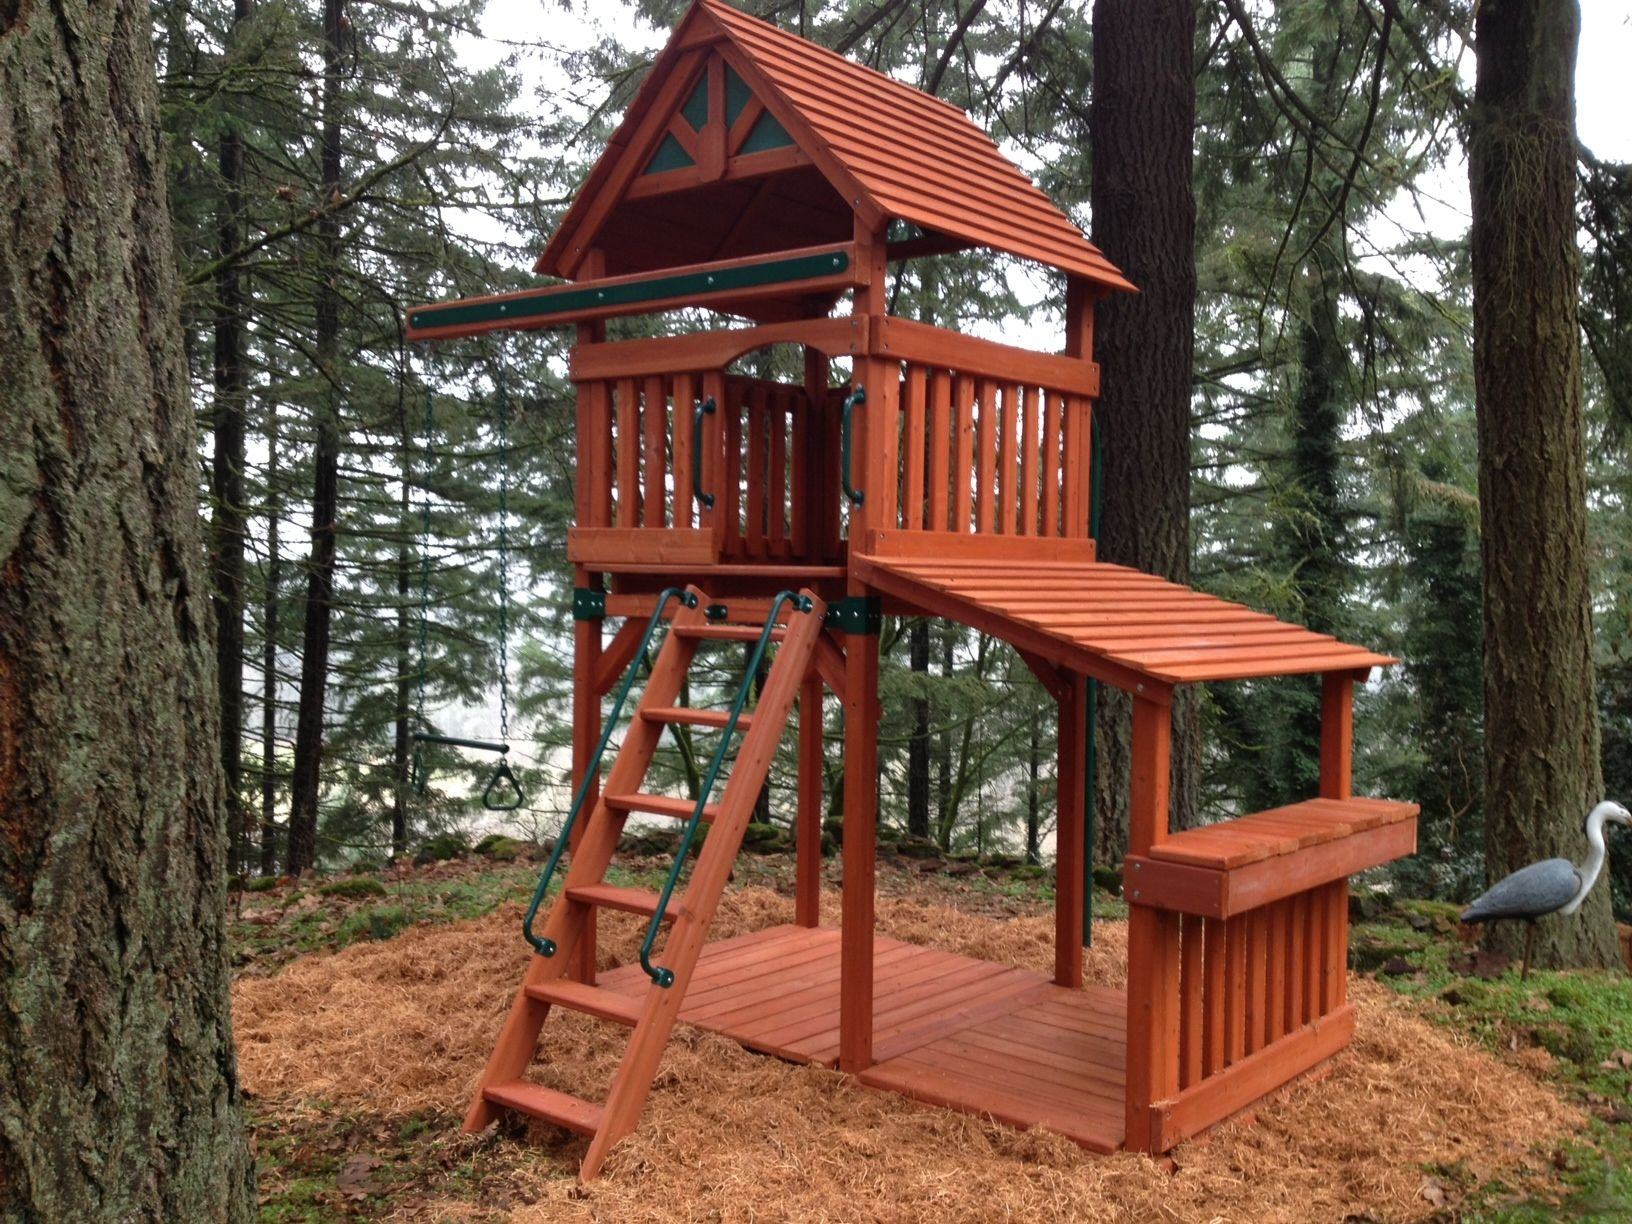 Great Play Structure for a smaller, wooded area! | House ...